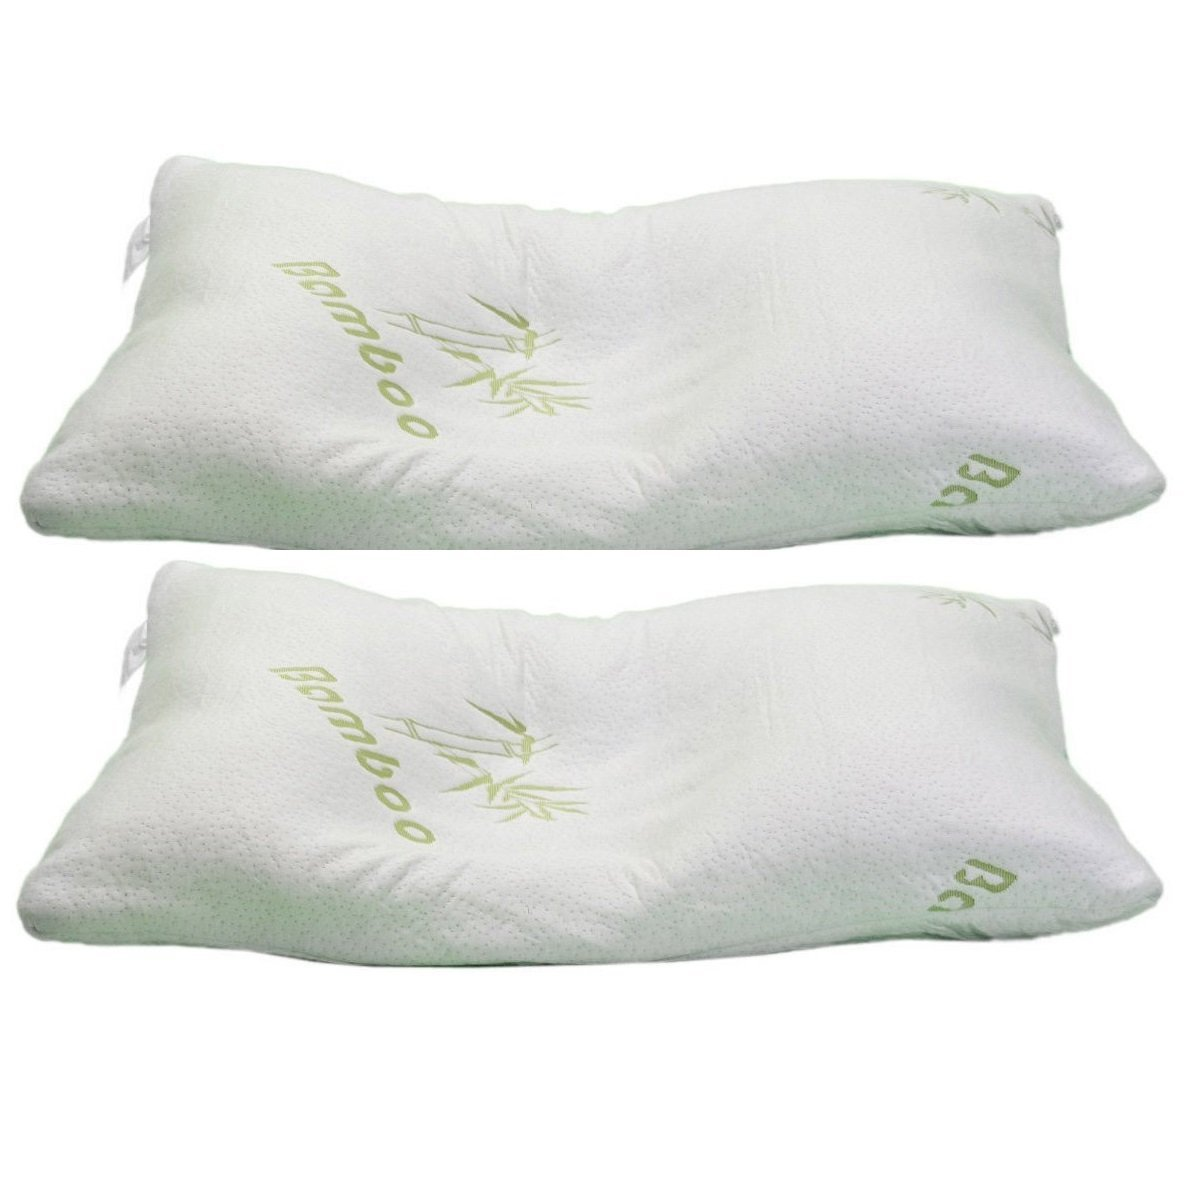 com ip king pillow standard memory maximum walmart foam back bamboo support for size neck magic